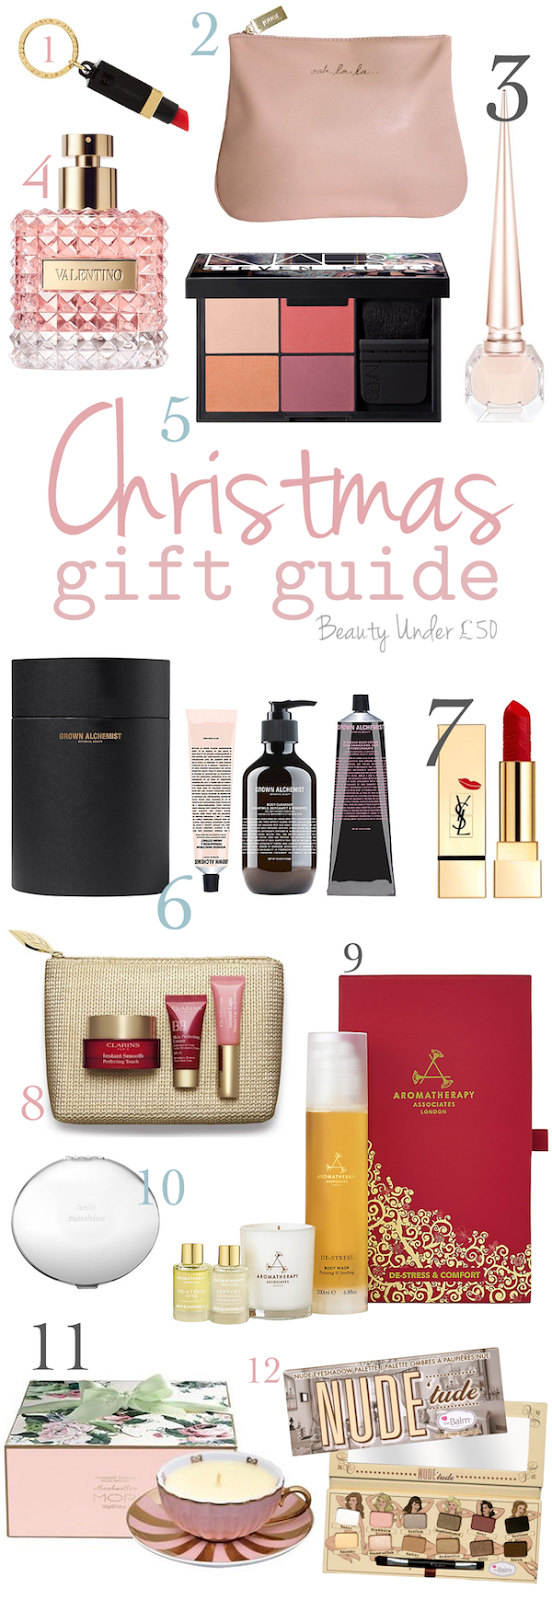 Christmas Gift Guide: Beauty Gifts Under £50